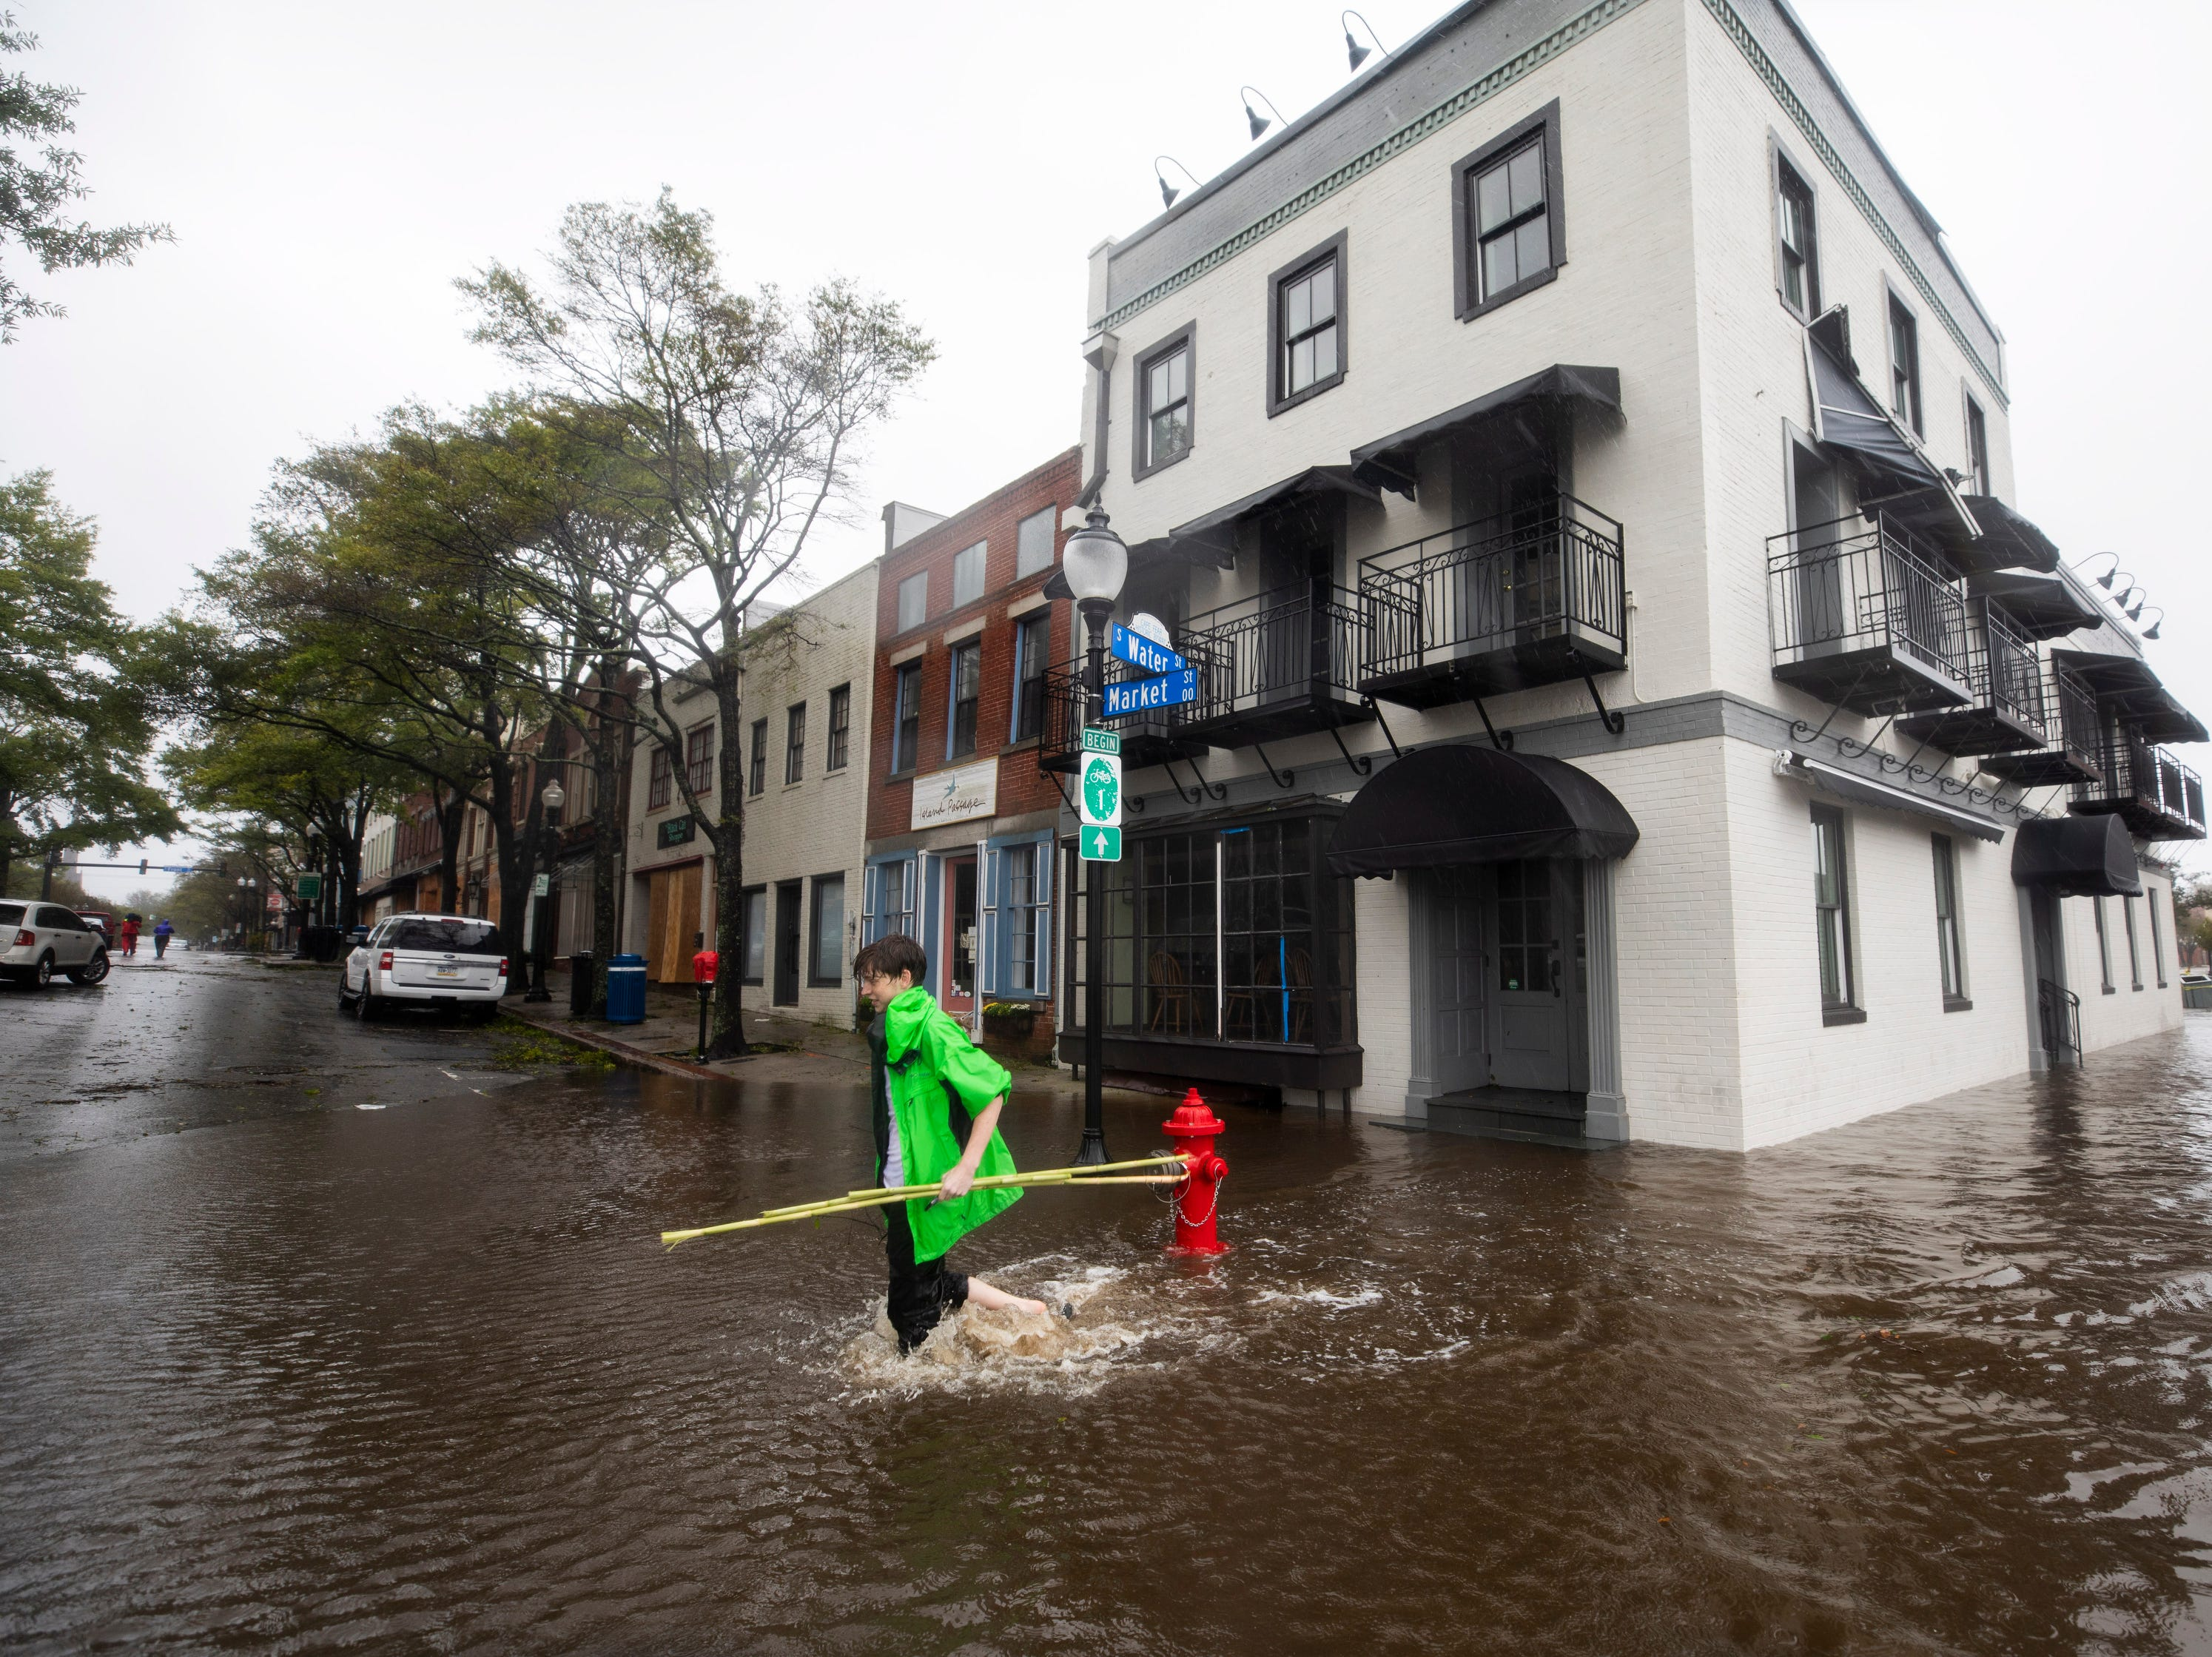 Sam Parks walks through flooded Water Street as Hurricane Florence comes ashore in Wilmington, N.C.